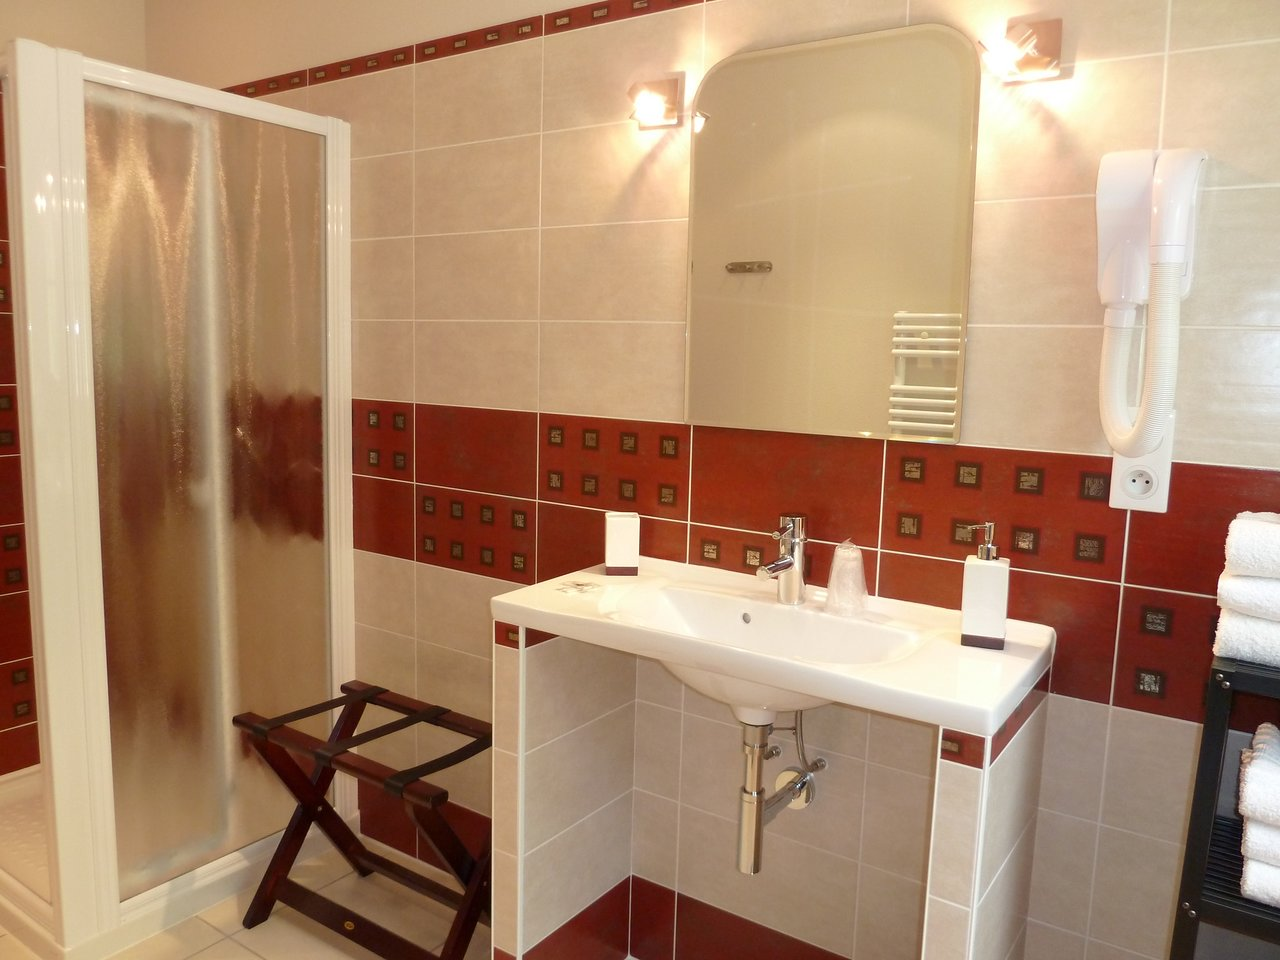 Chambre D Hote Coulon Chambres D Hotes Les Fuyes Prices B B Reviews Coulon France